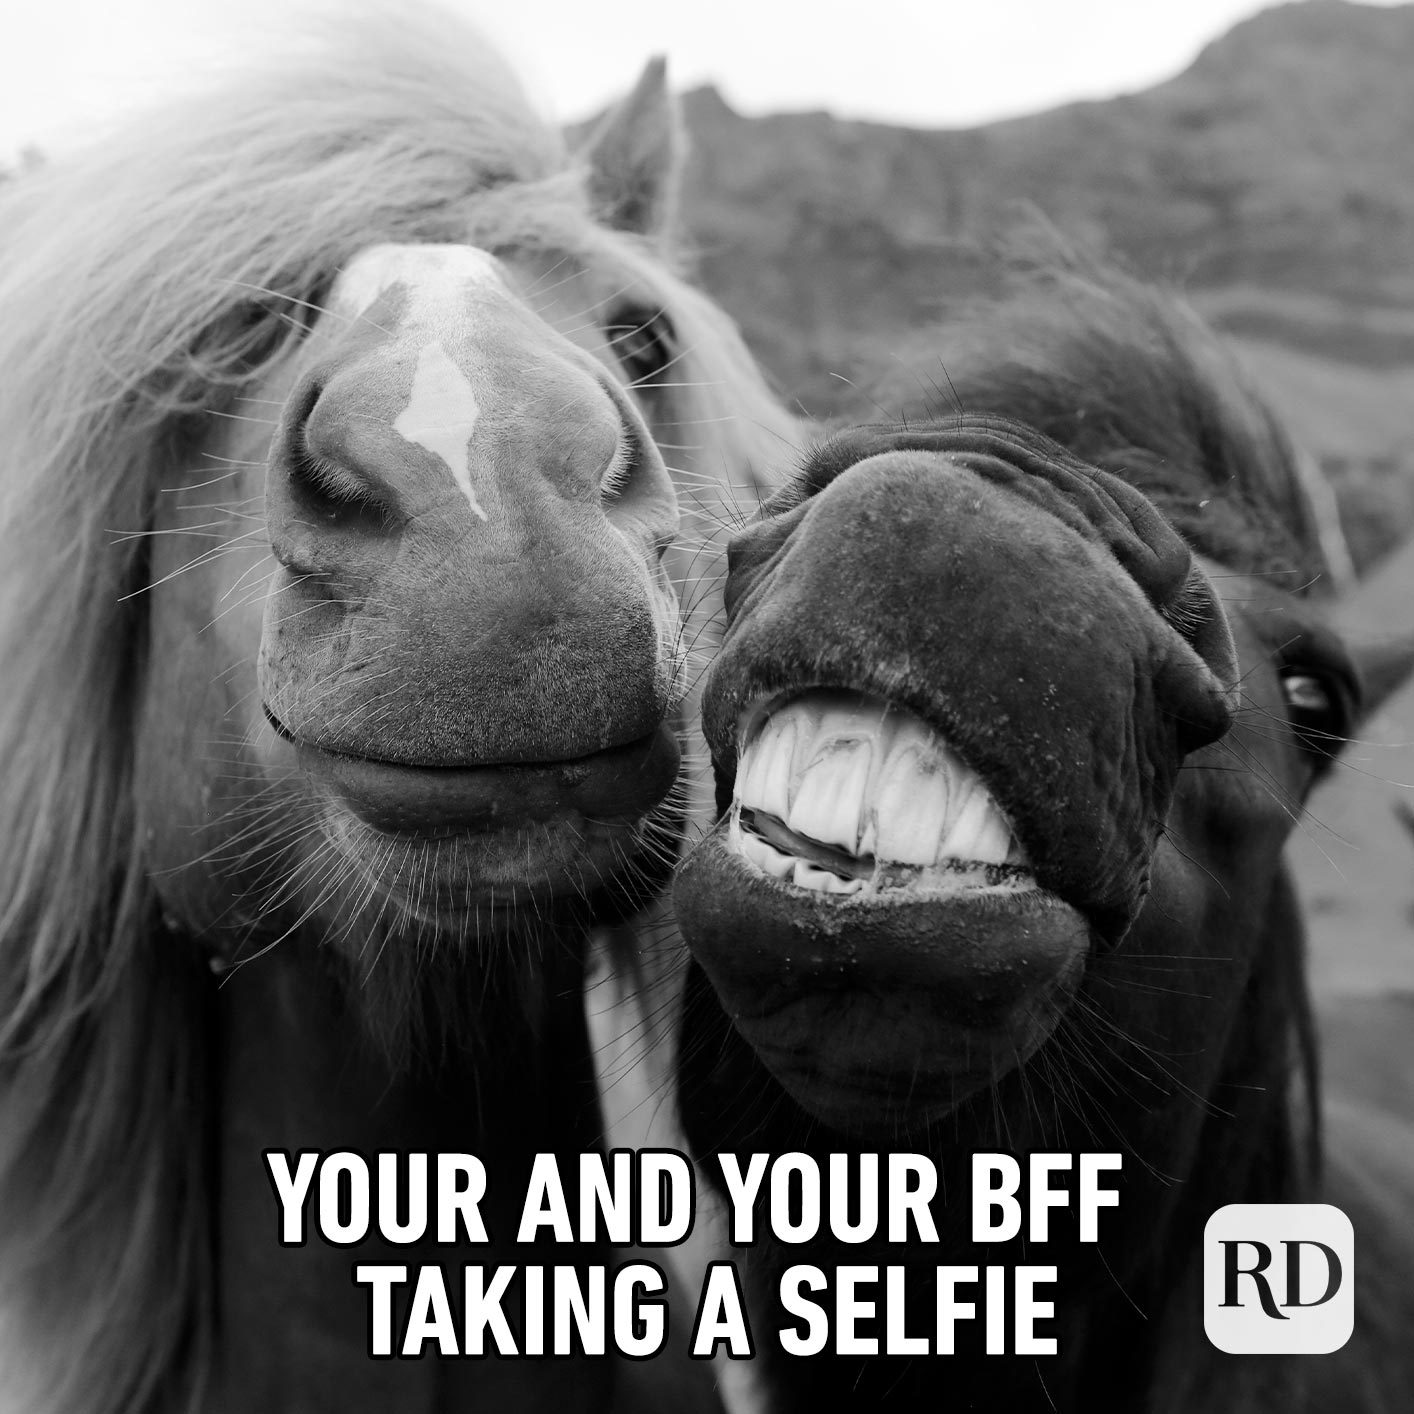 Two horses smiling for camera. Meme text: You and your BFF taking a selfie